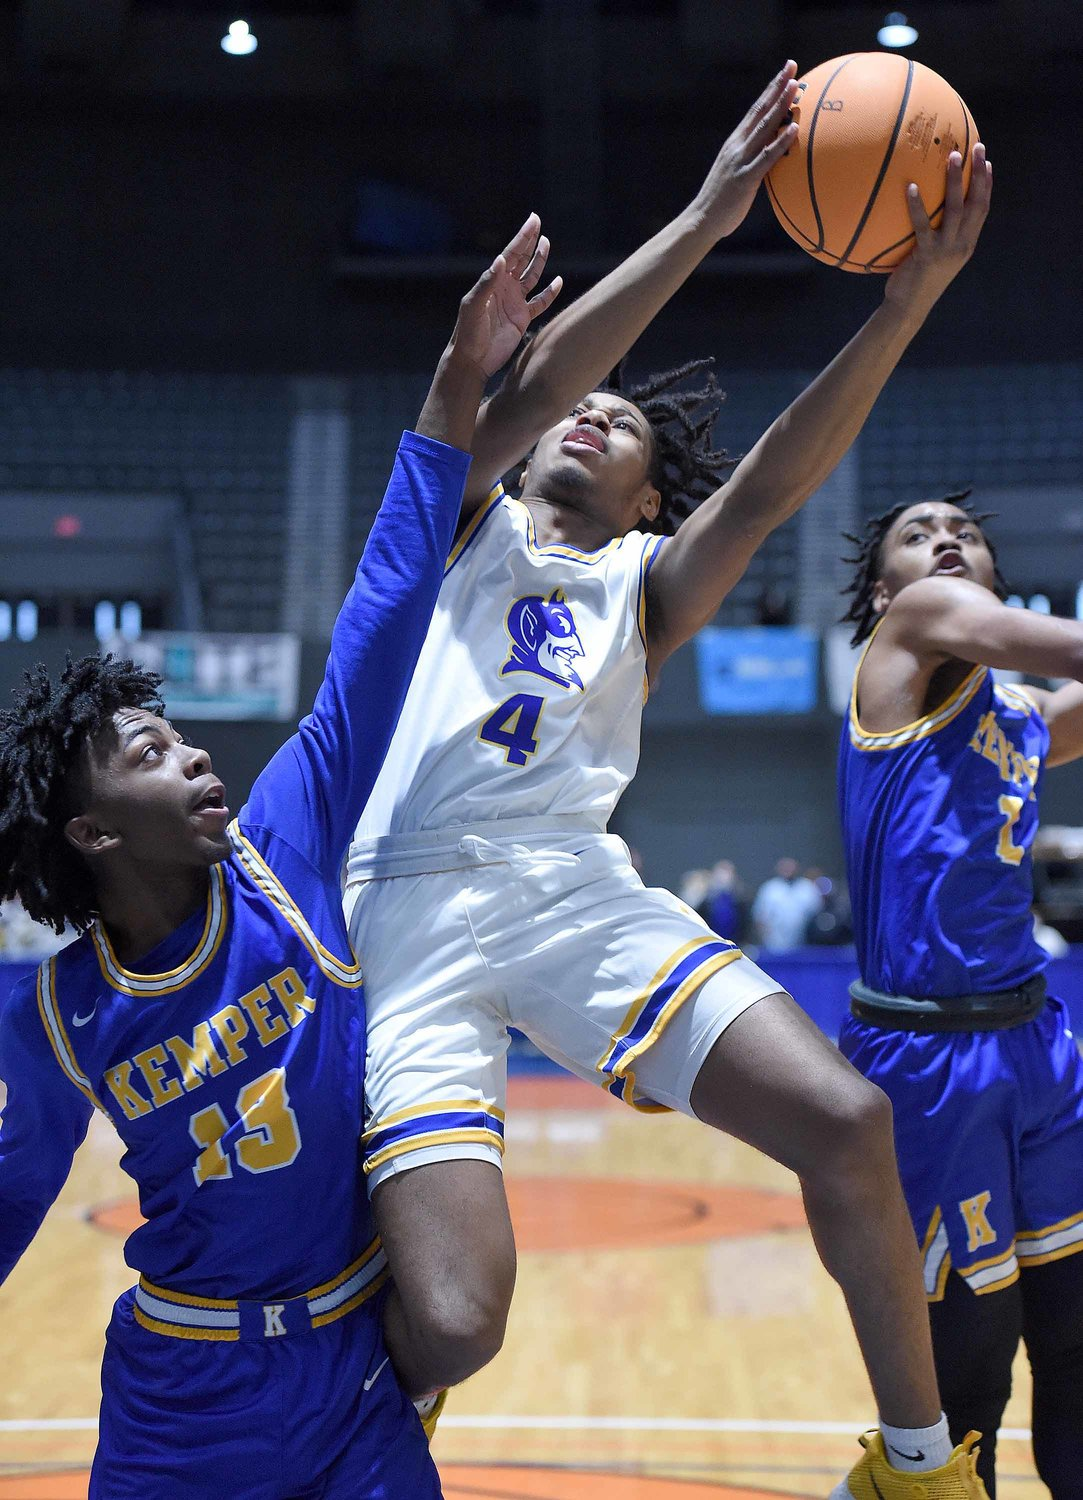 Kemper County's Aiden Bourrage (13) defends against Booneville's Dicorean McGee (4) at the MHSAA State Basketball Tournament  semifinals on Wednesday, March 3, 2021, at the Mississippi Coliseum in Jackson, Miss.